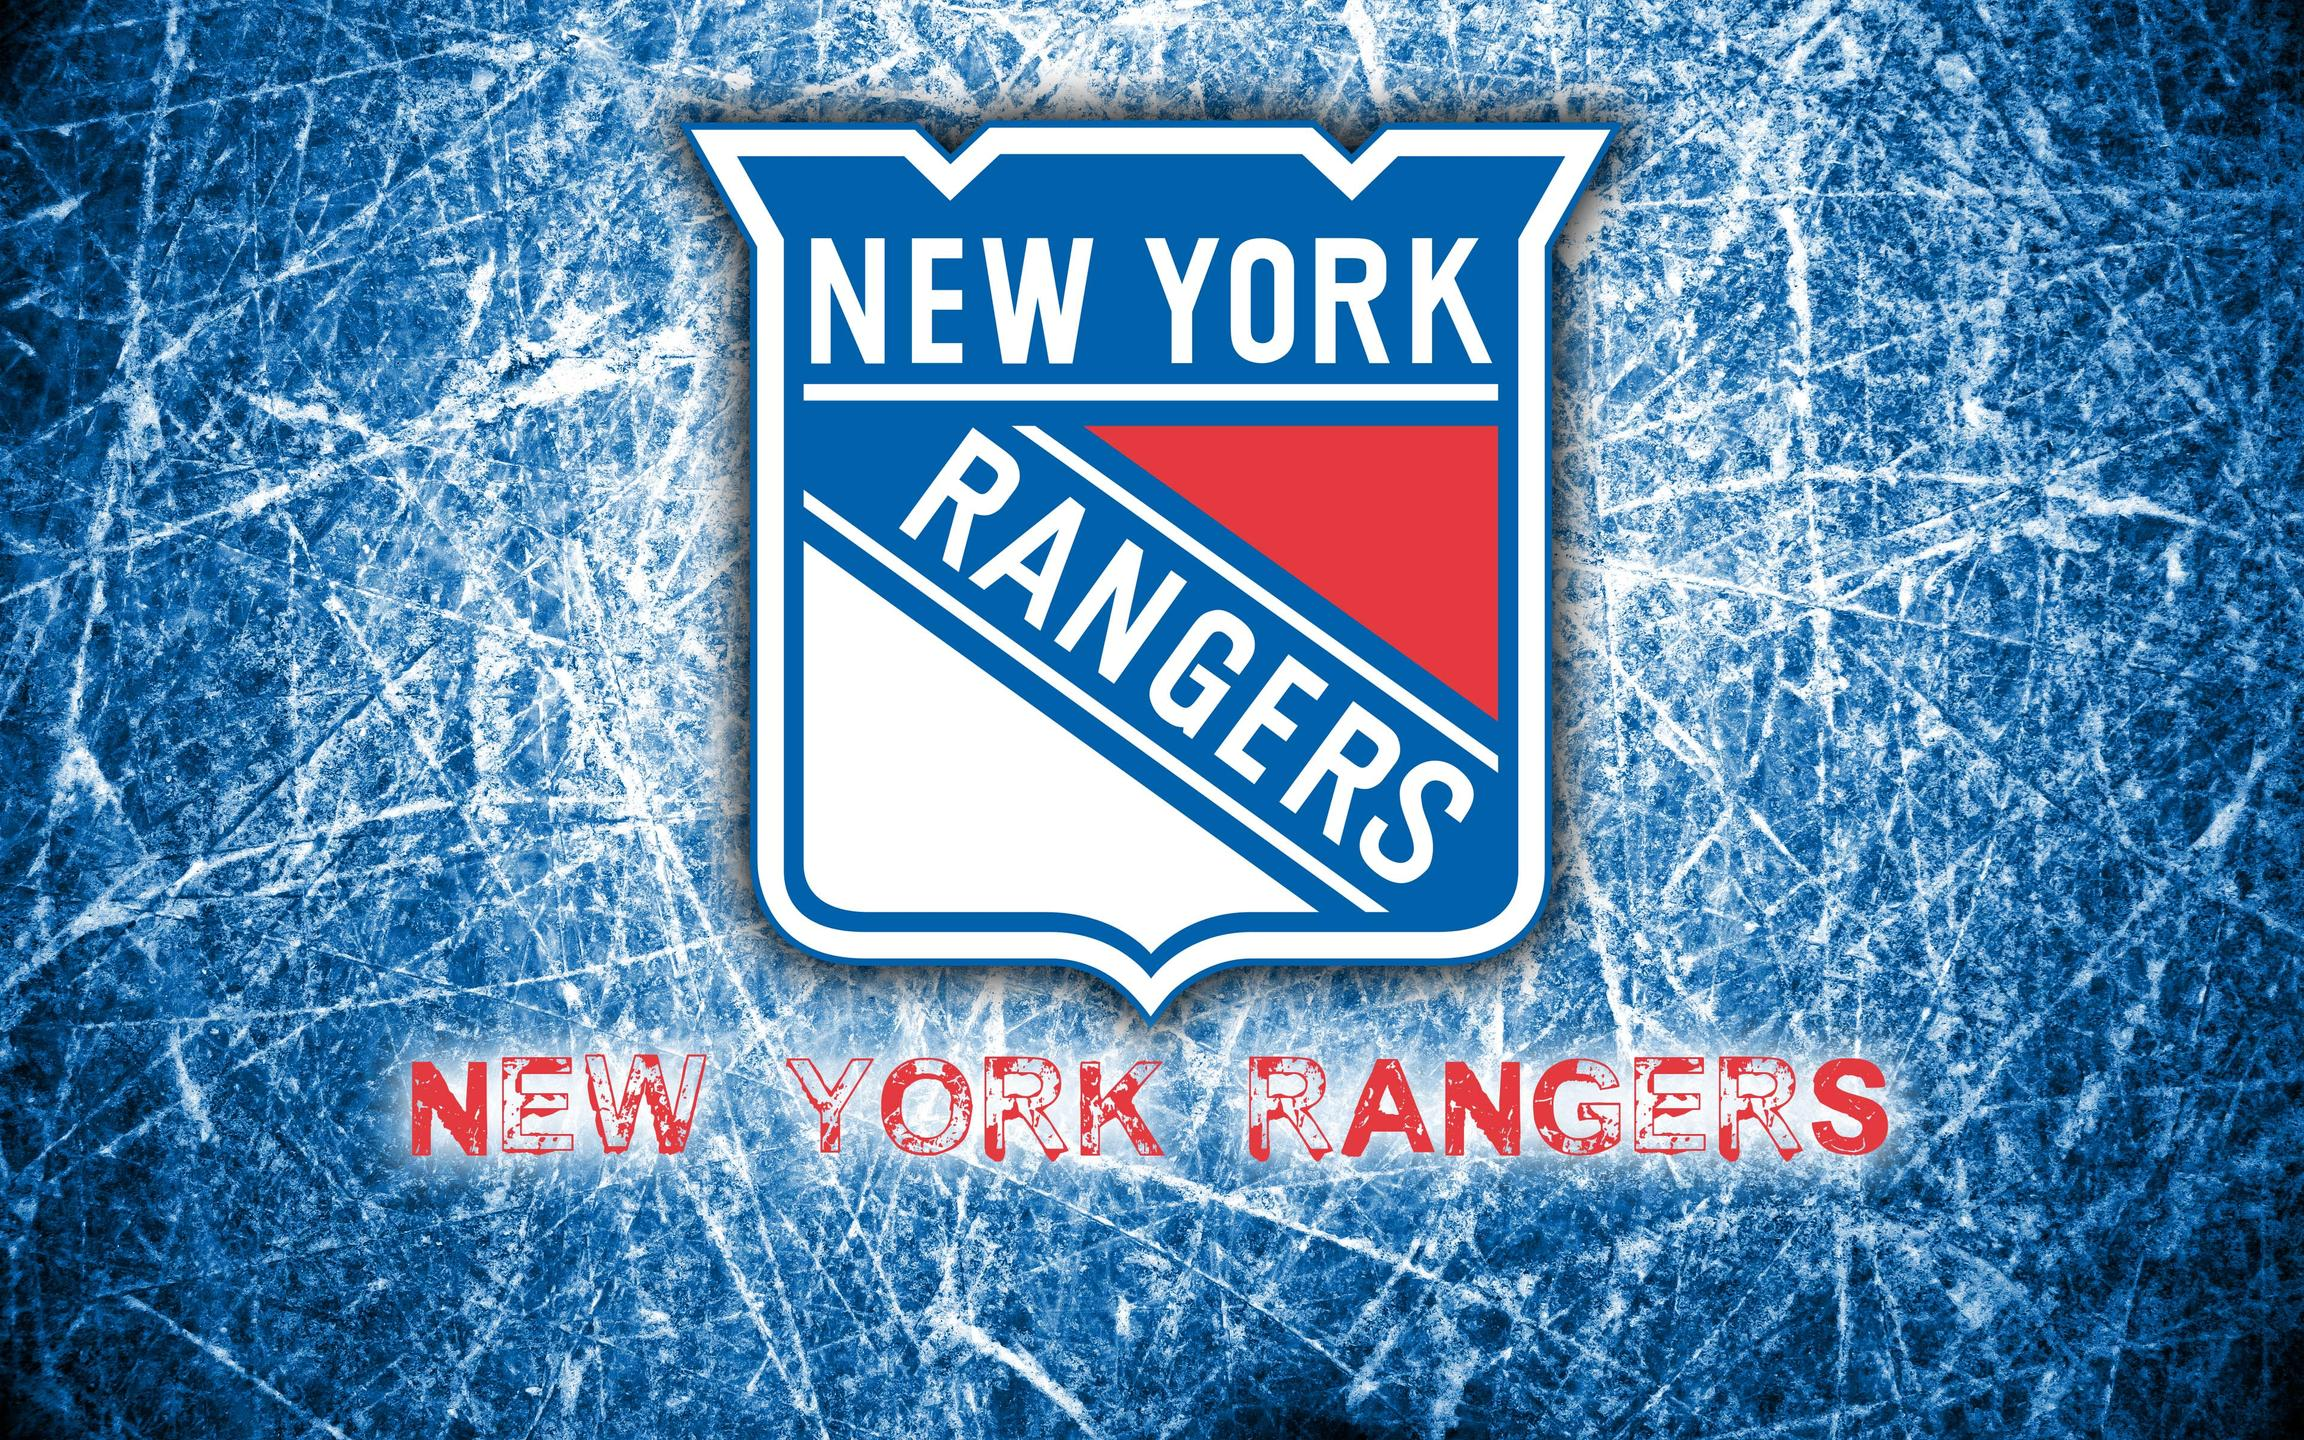 New York Rangers 2014 Logo Wallpaper Wide or HD Sports Wallpapers 2304x1440